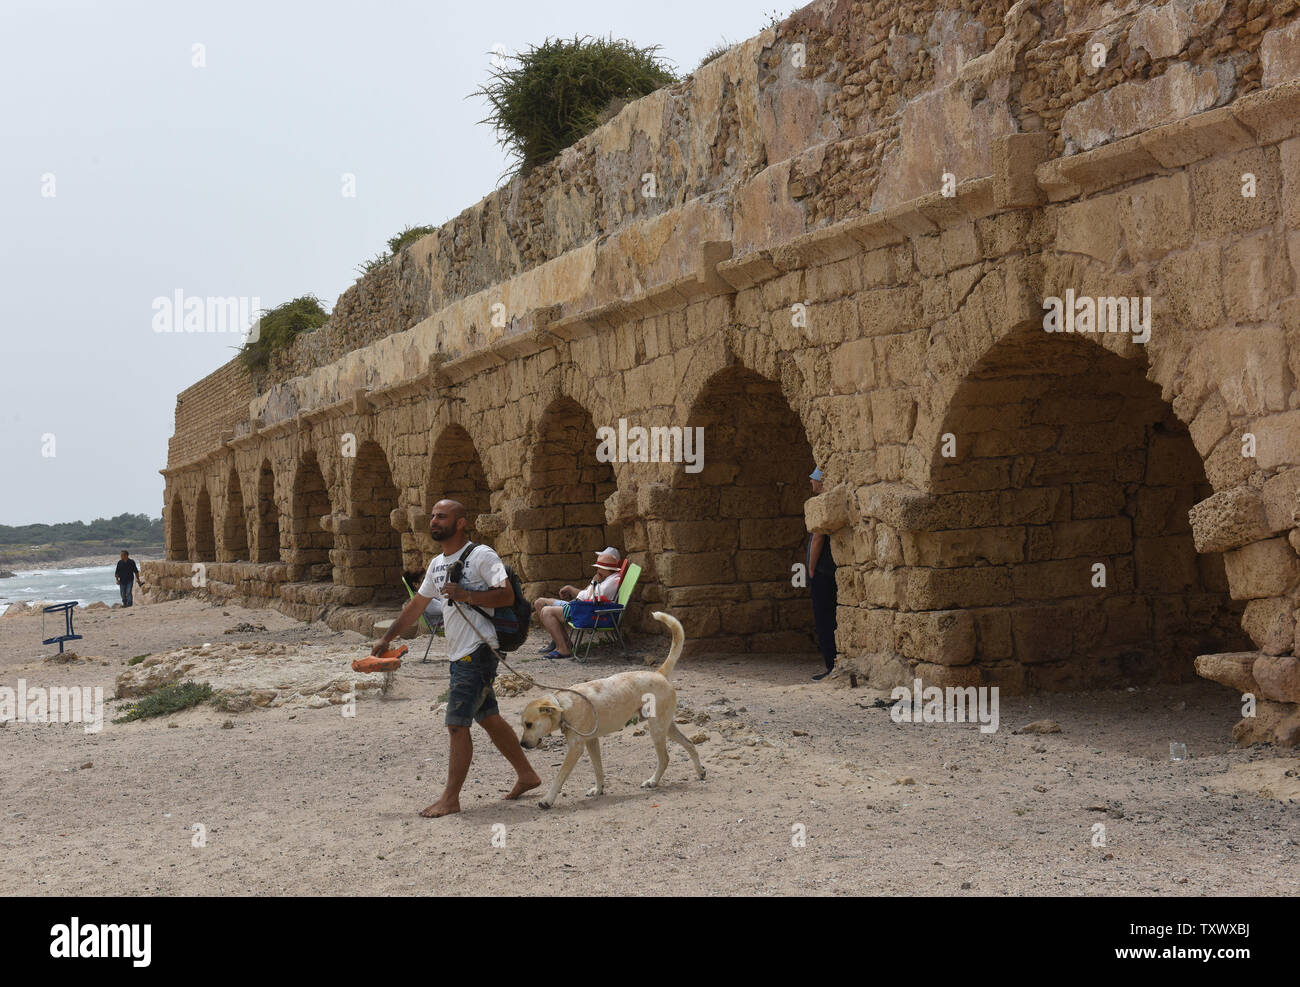 An Israeli walks his dog near the aqueduct in Caesarea, Israel, April 26, 2017. The Edmond de Rothschild Foundations is investing approximately $275,000 to expose and restore Caesarea's hidden treasures.  Photo by Debbie Hill/UPI - Stock Image